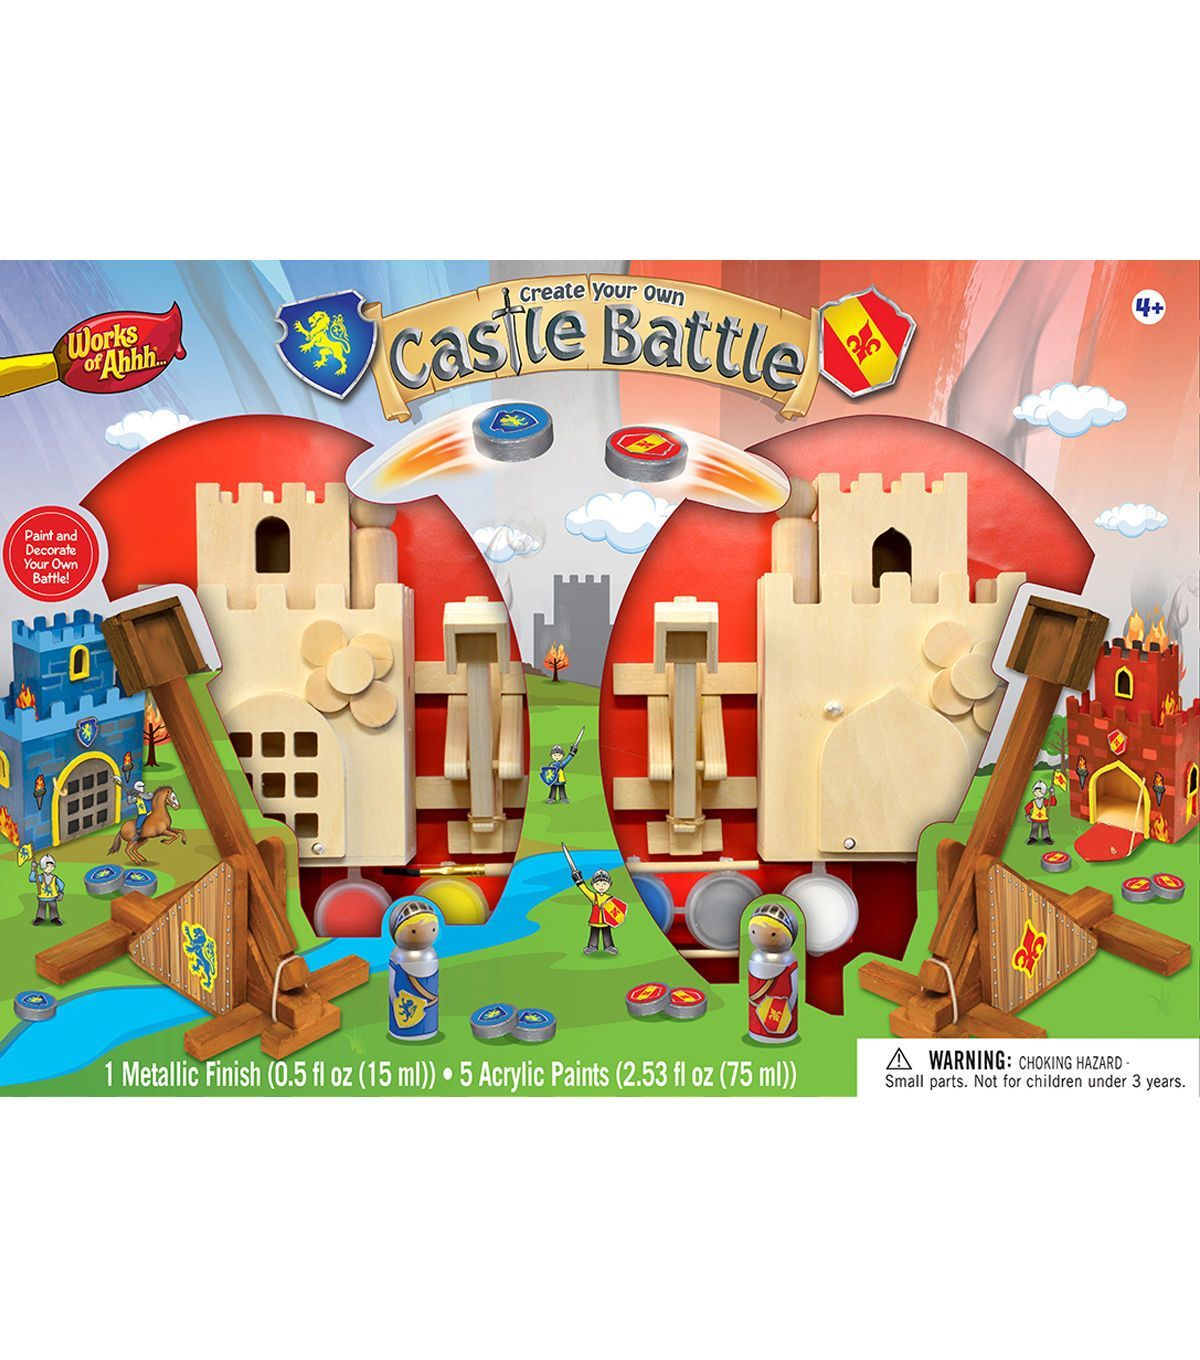 works of ahhh the castle battle wood craft collection | wood